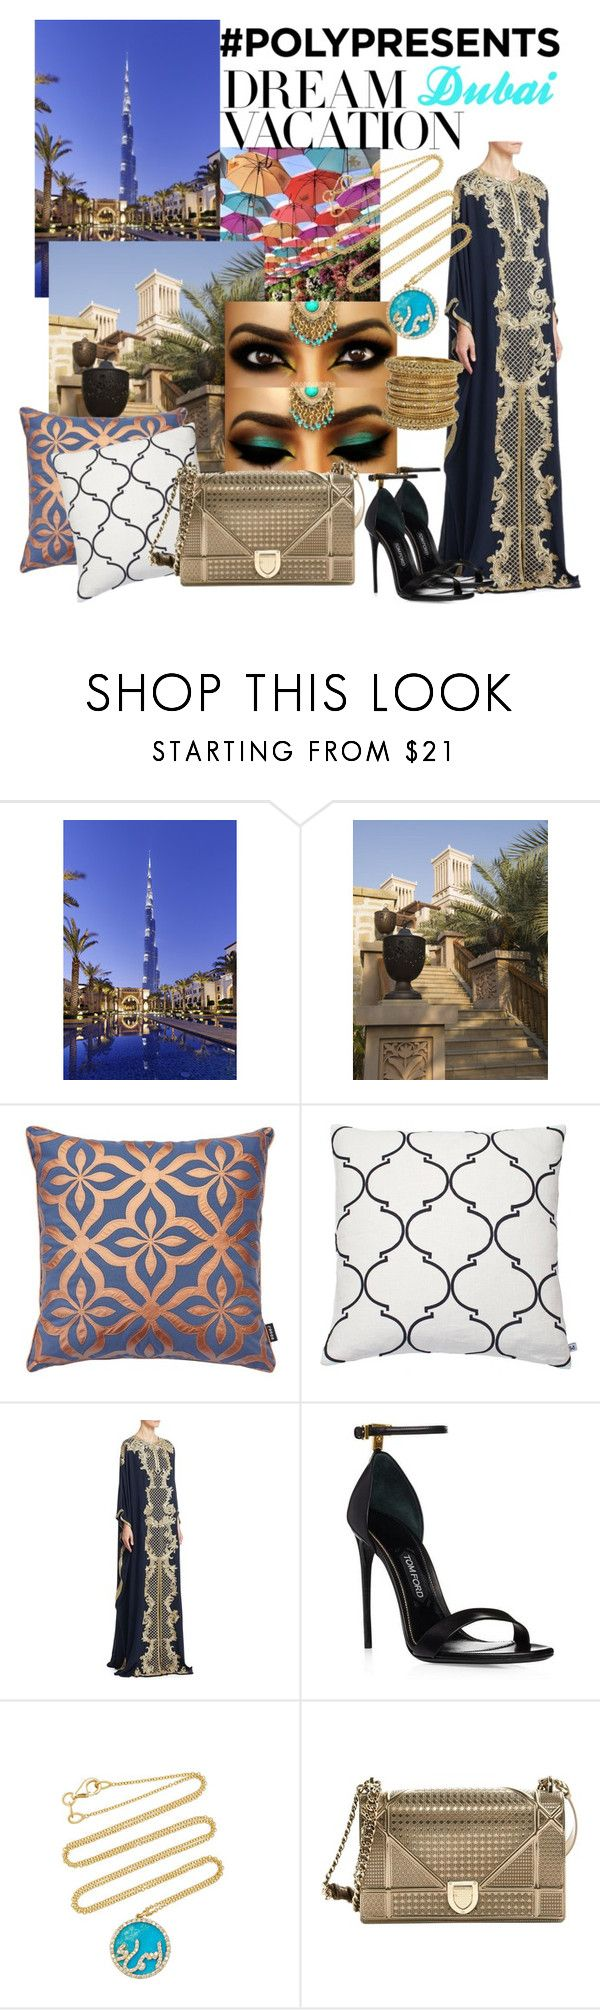 """""""#PolyPresents: Dream Vacation"""" by saltanat-orozalieva ❤ liked on Polyvore featuring Nina Kullberg, Marchesa, Names by Noush, Christian Dior, contestentry and polyPresents"""